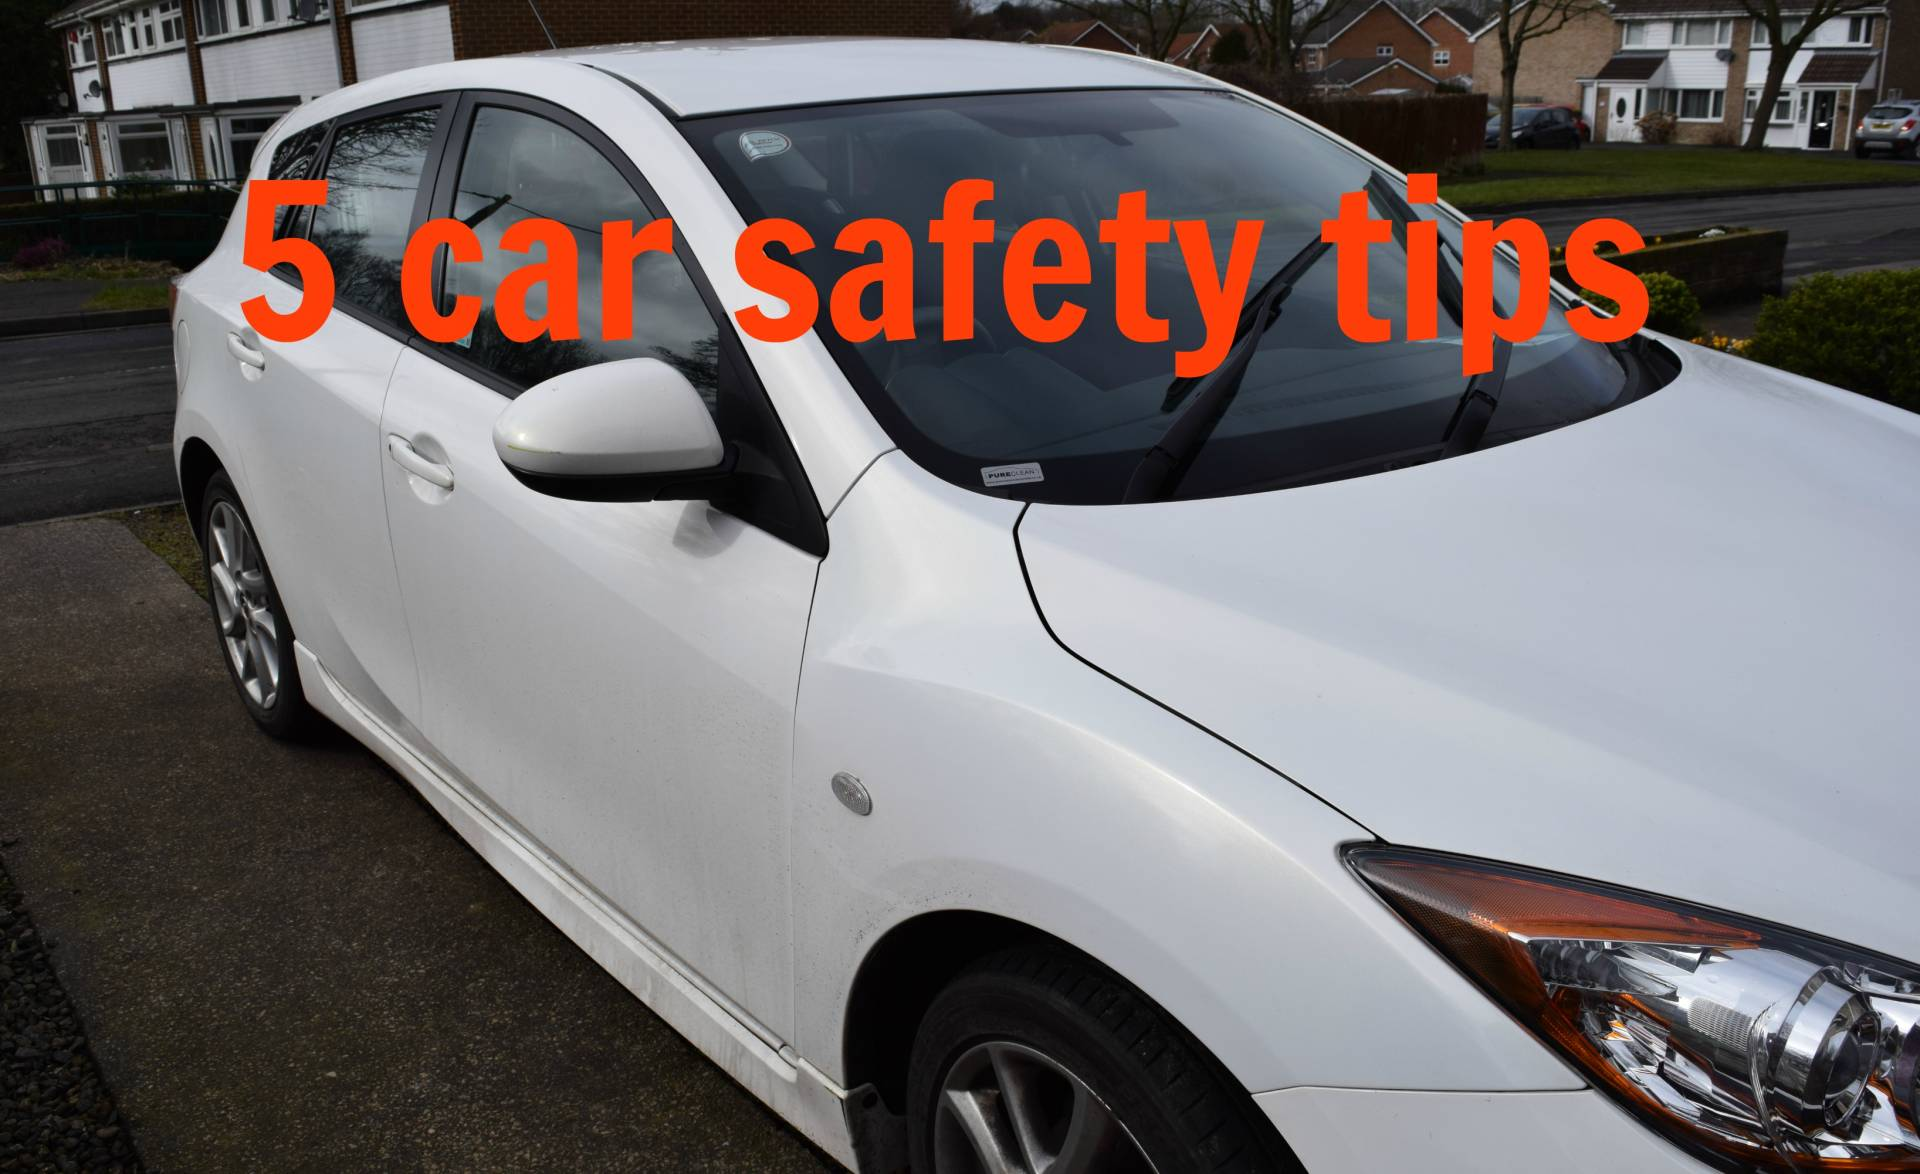 5 car safety tips